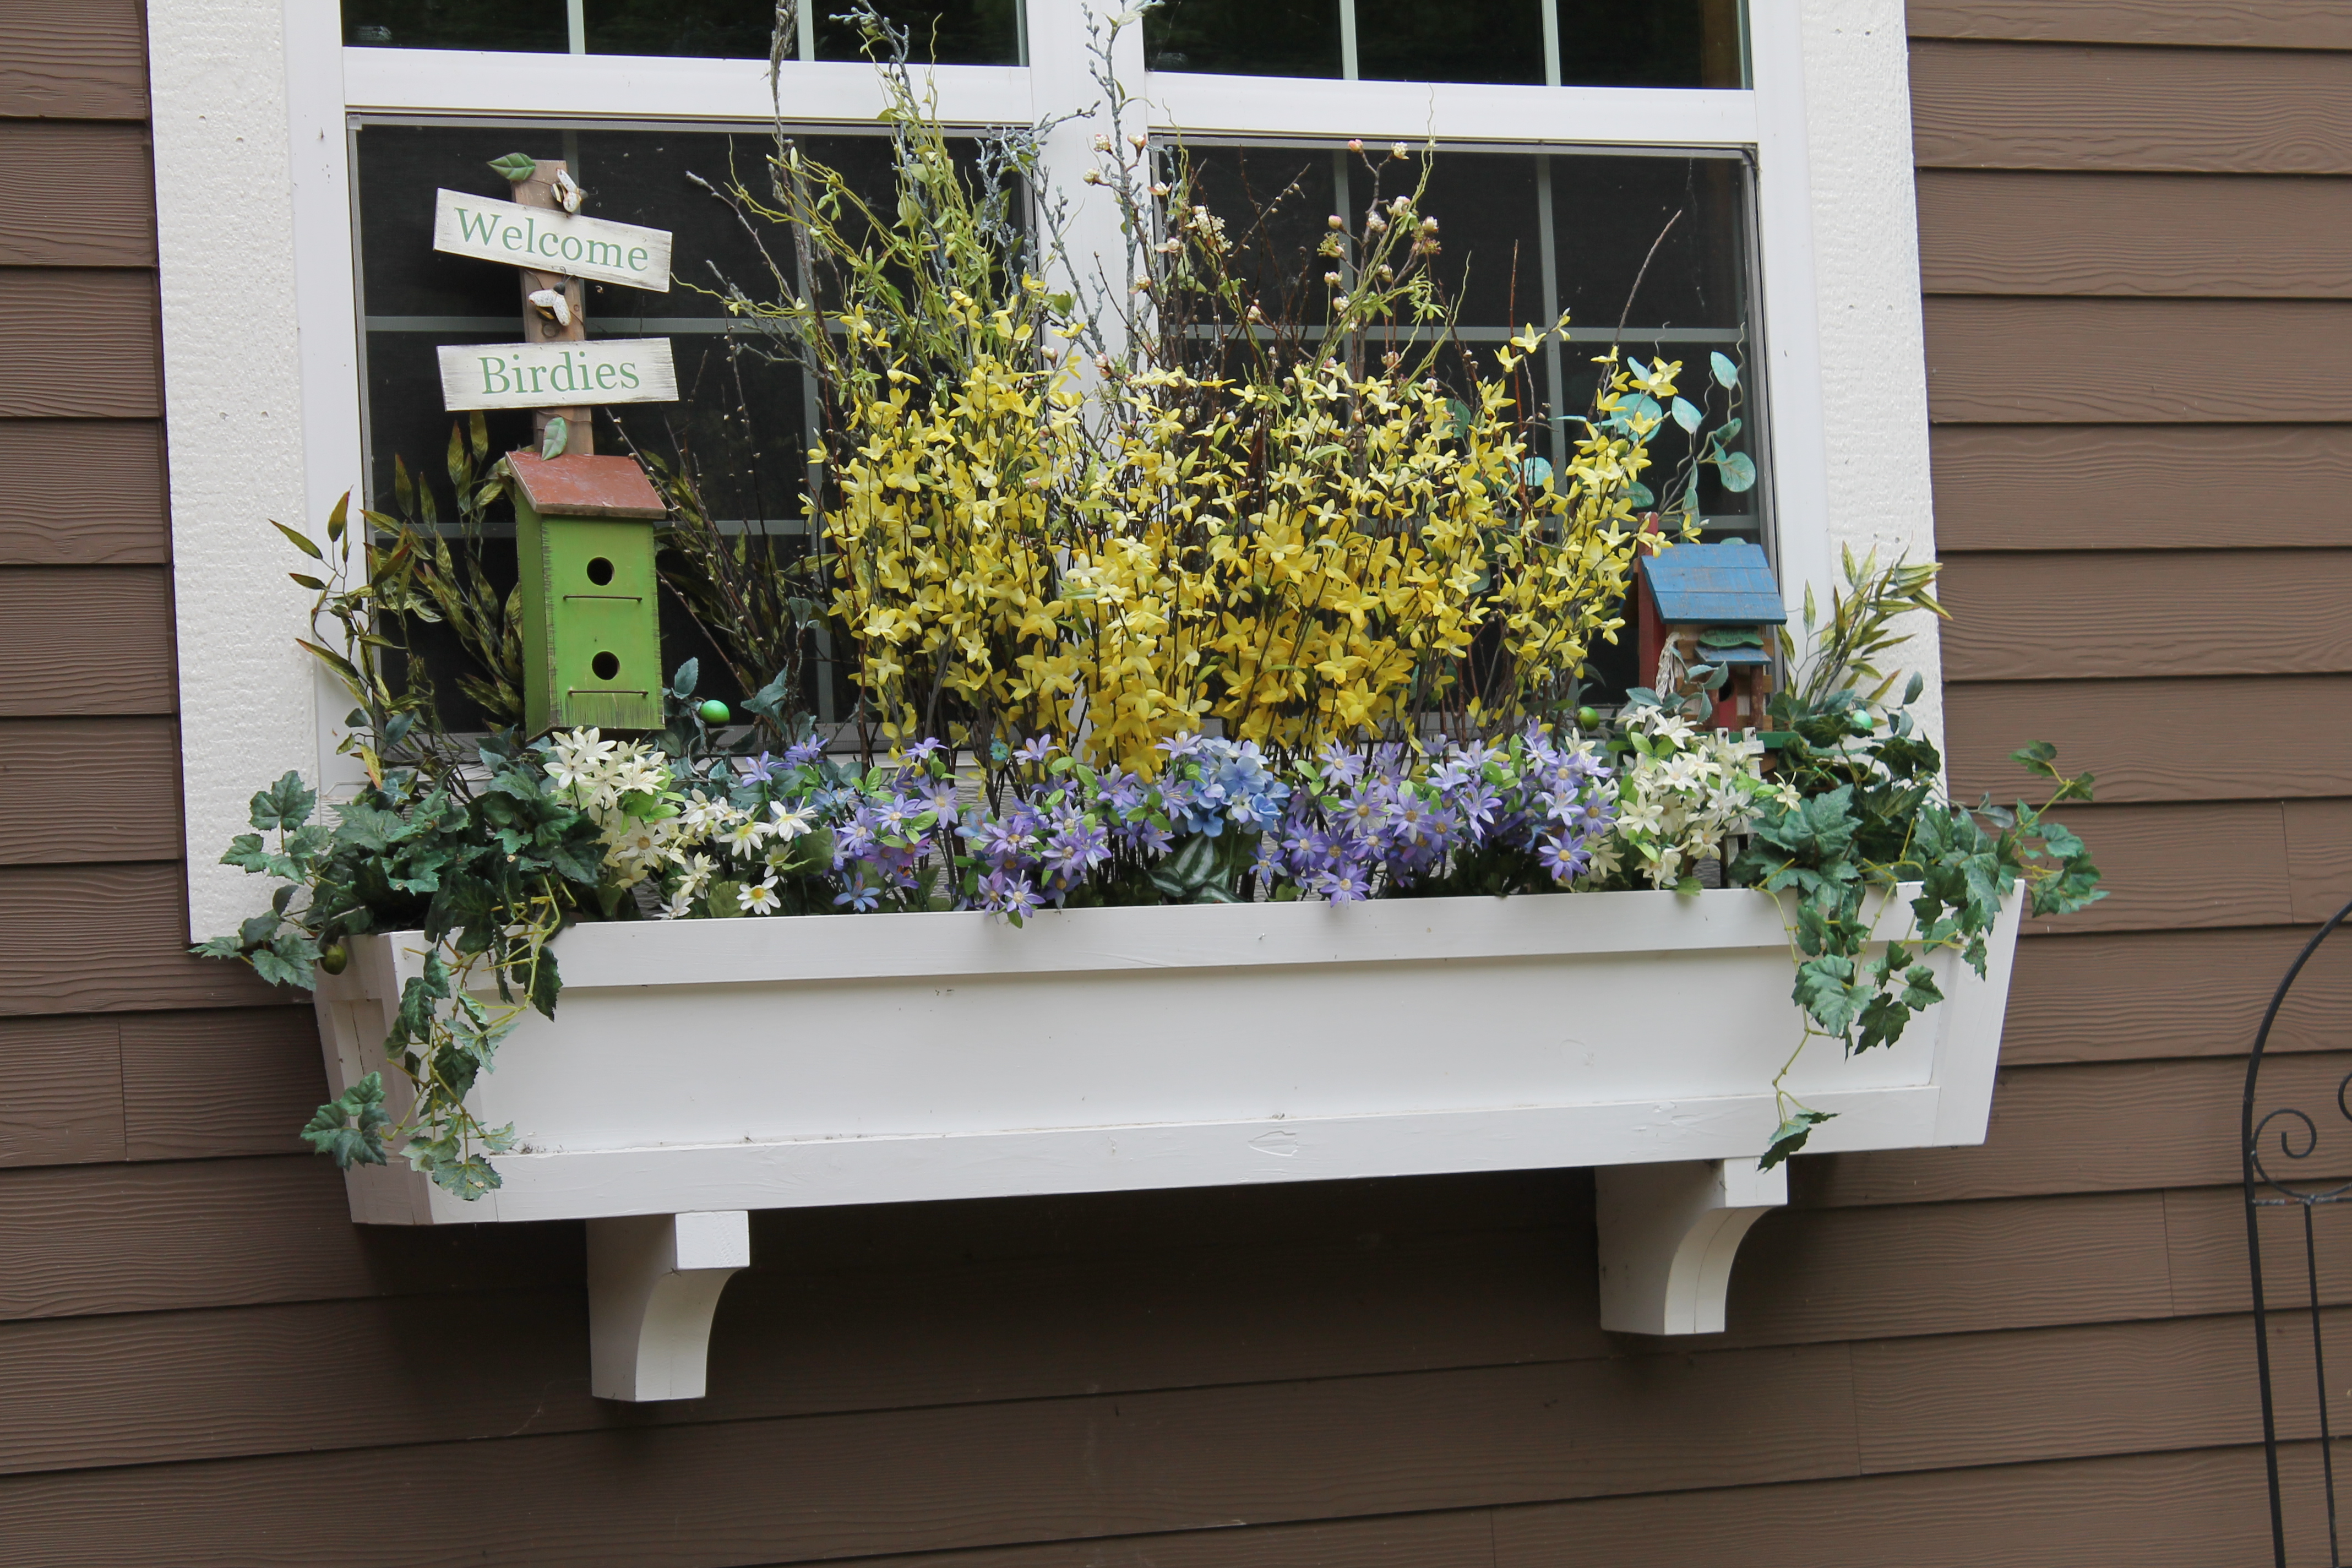 Diy Garden Window Plans Remodelaholic How To Build A Window Box Planter In 5 Steps